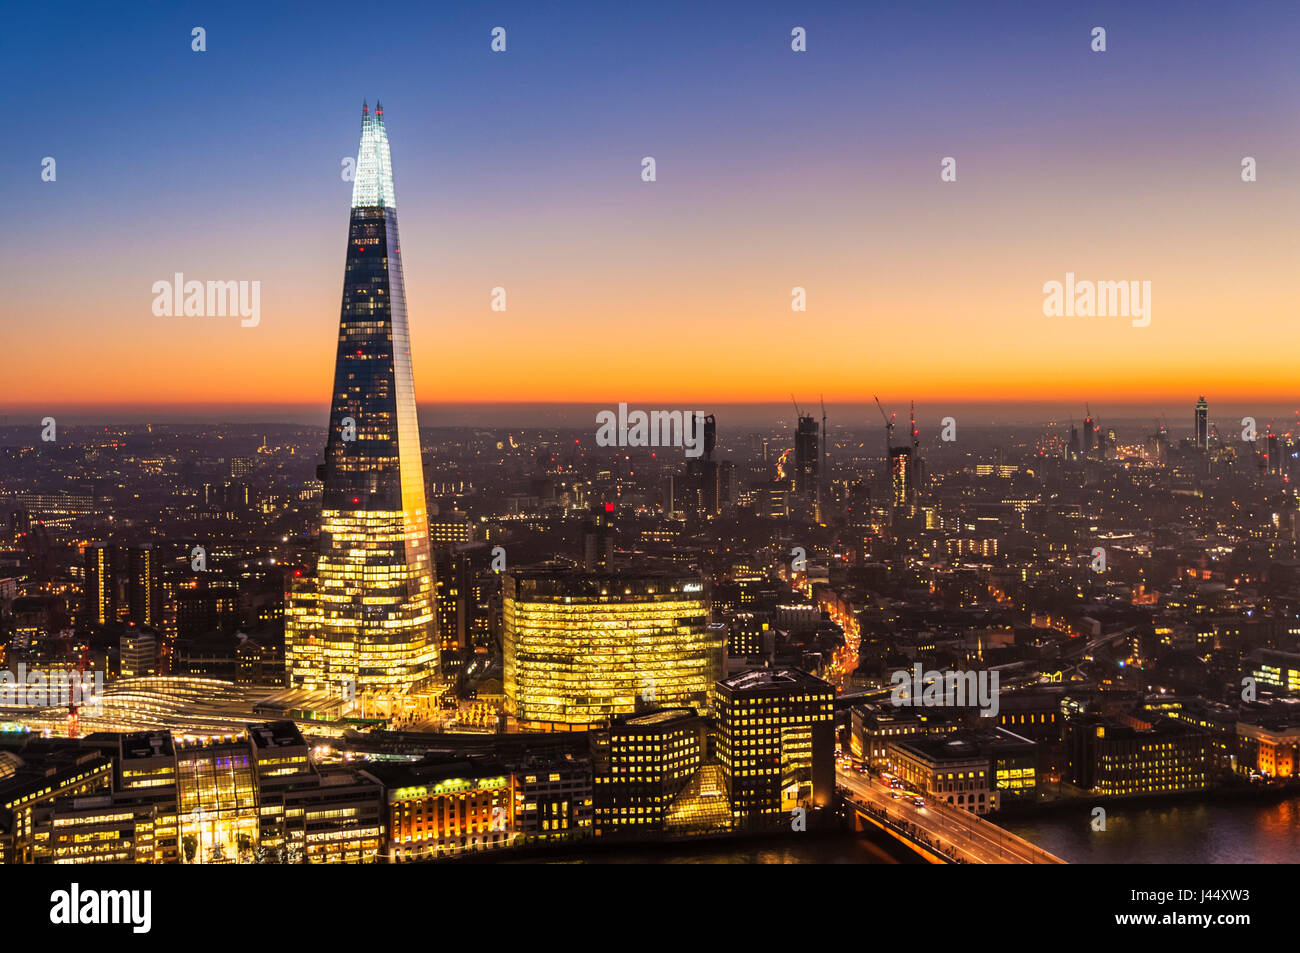 L'Écharde de toits de Londres Londres nuit le shard london la nuit sunset sky horizon de Londres nuit Grande Photo Stock